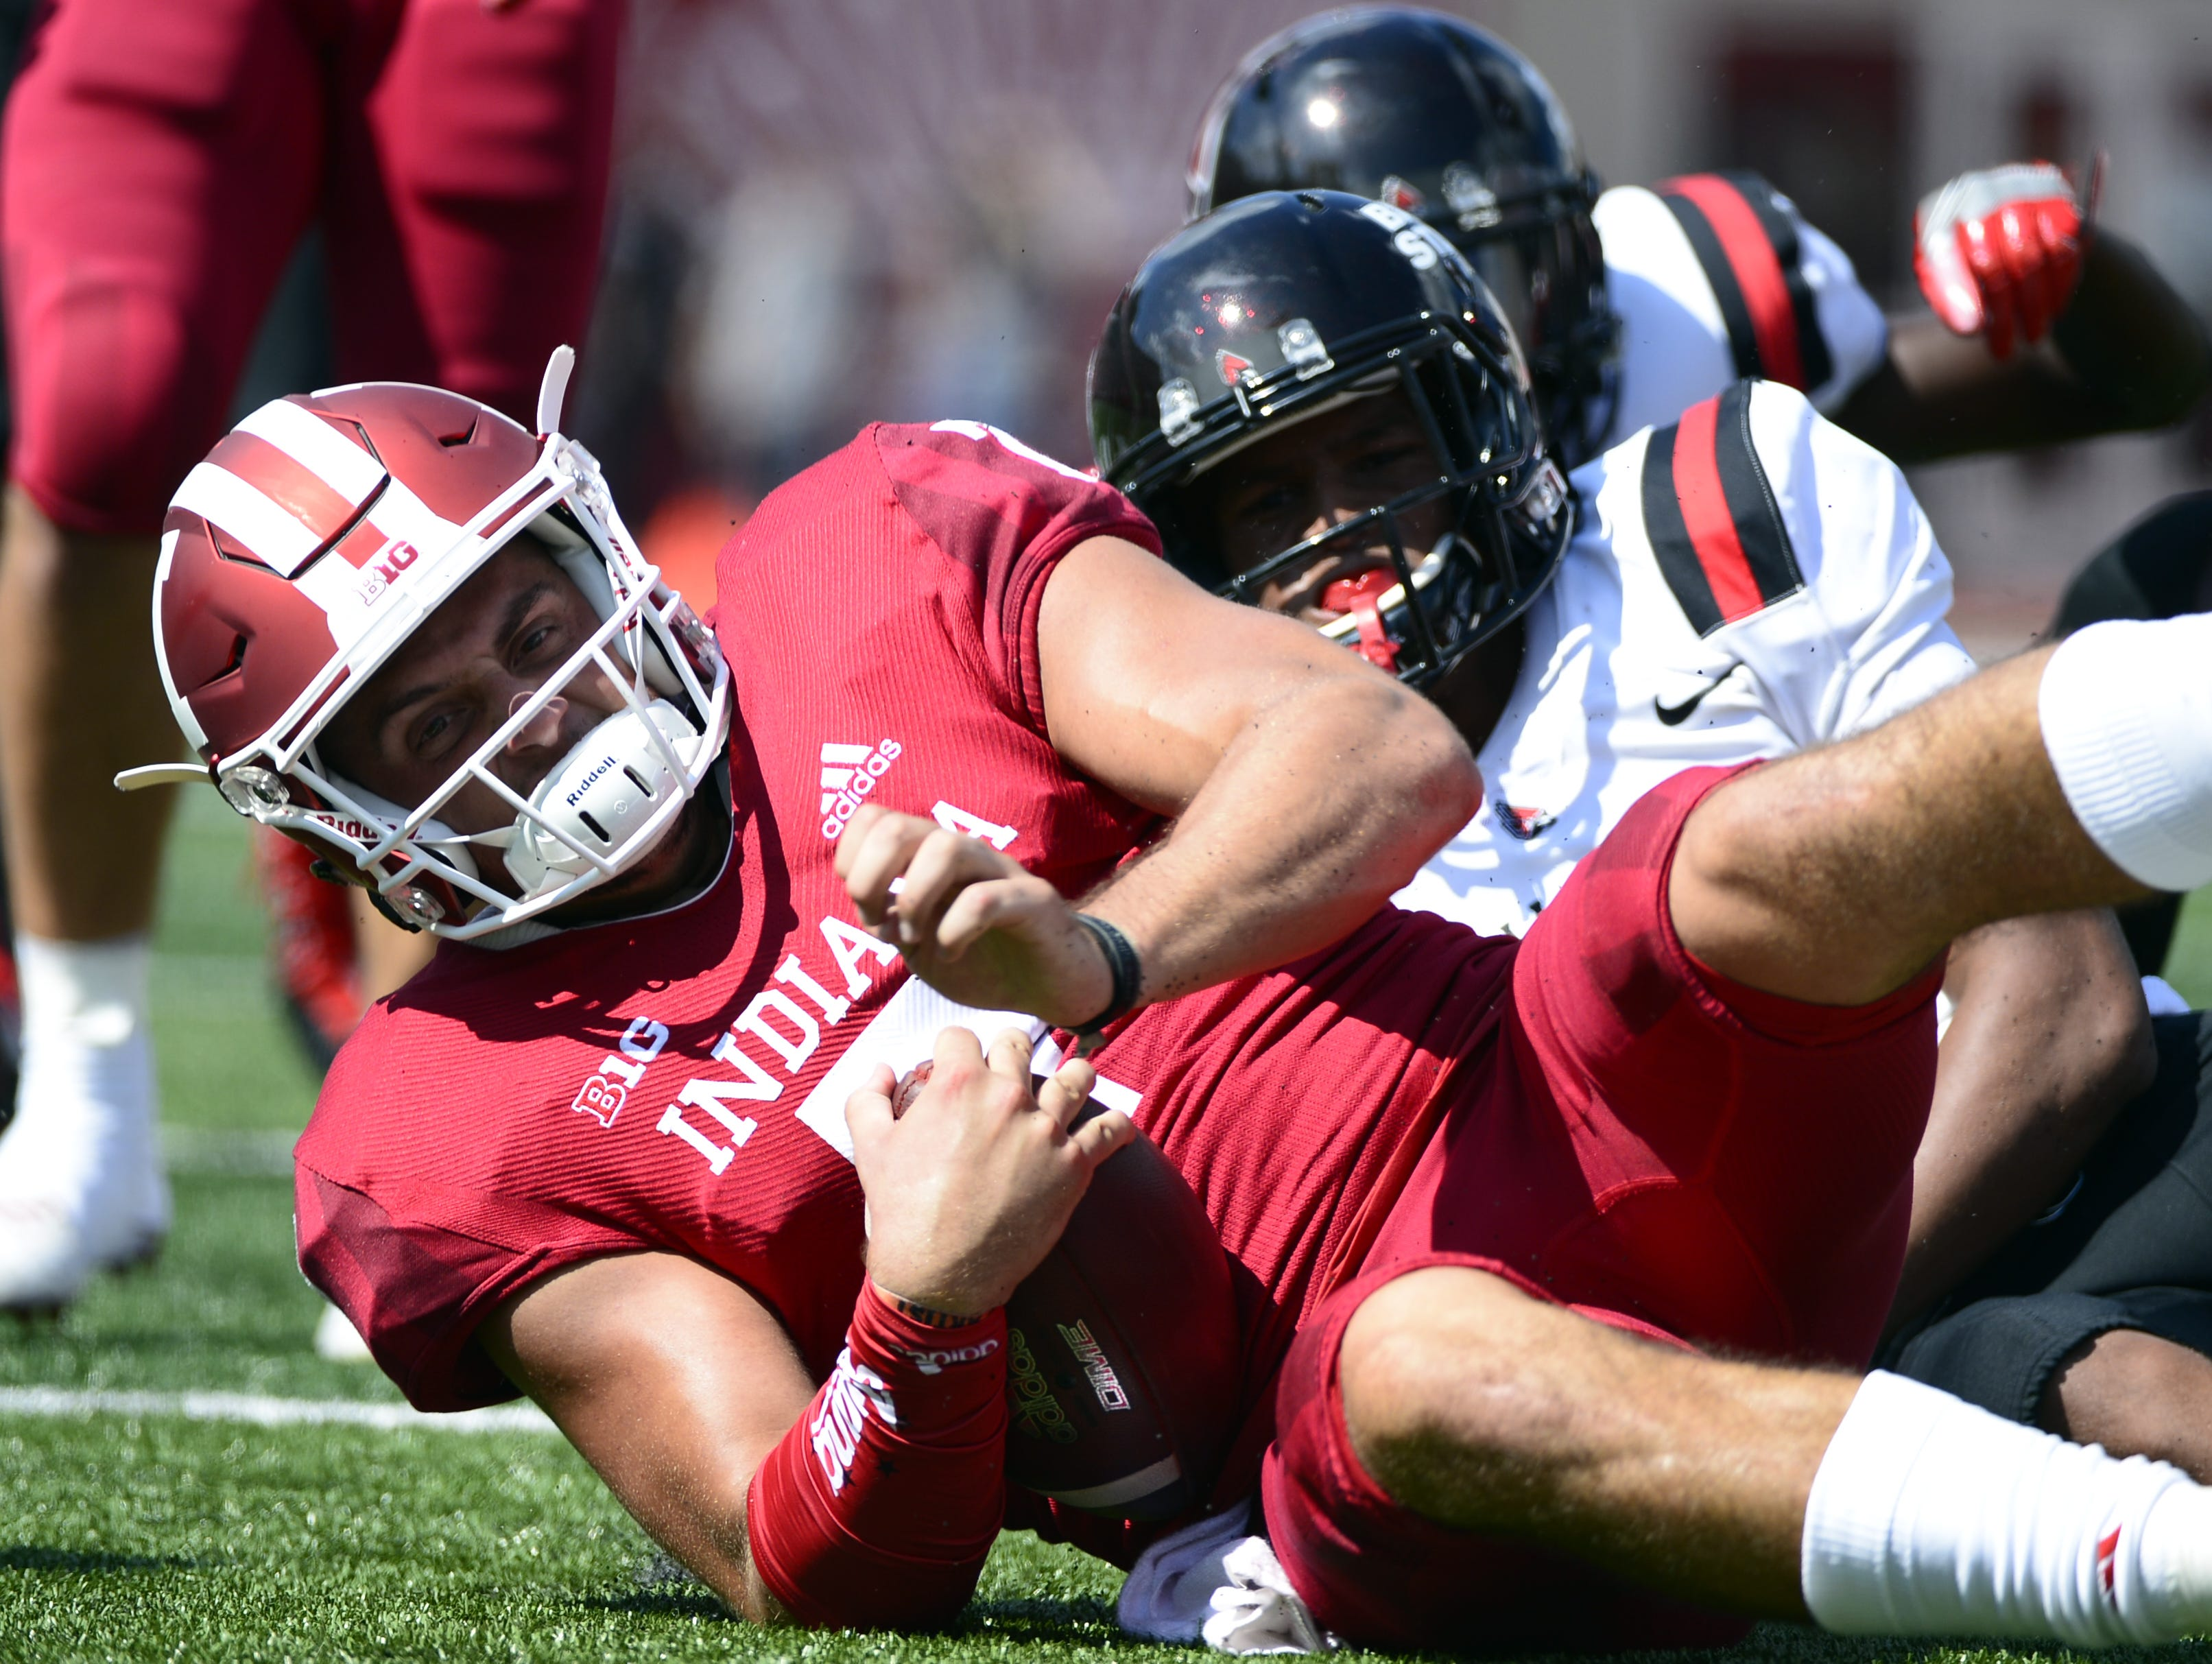 Indiana Hoosiers quarterback Mike Fiacable (7) is tackled during the game against Ball State at Memorial Stadium in Bloomington, Ind., on Saturday, Sept. 15, 2018.